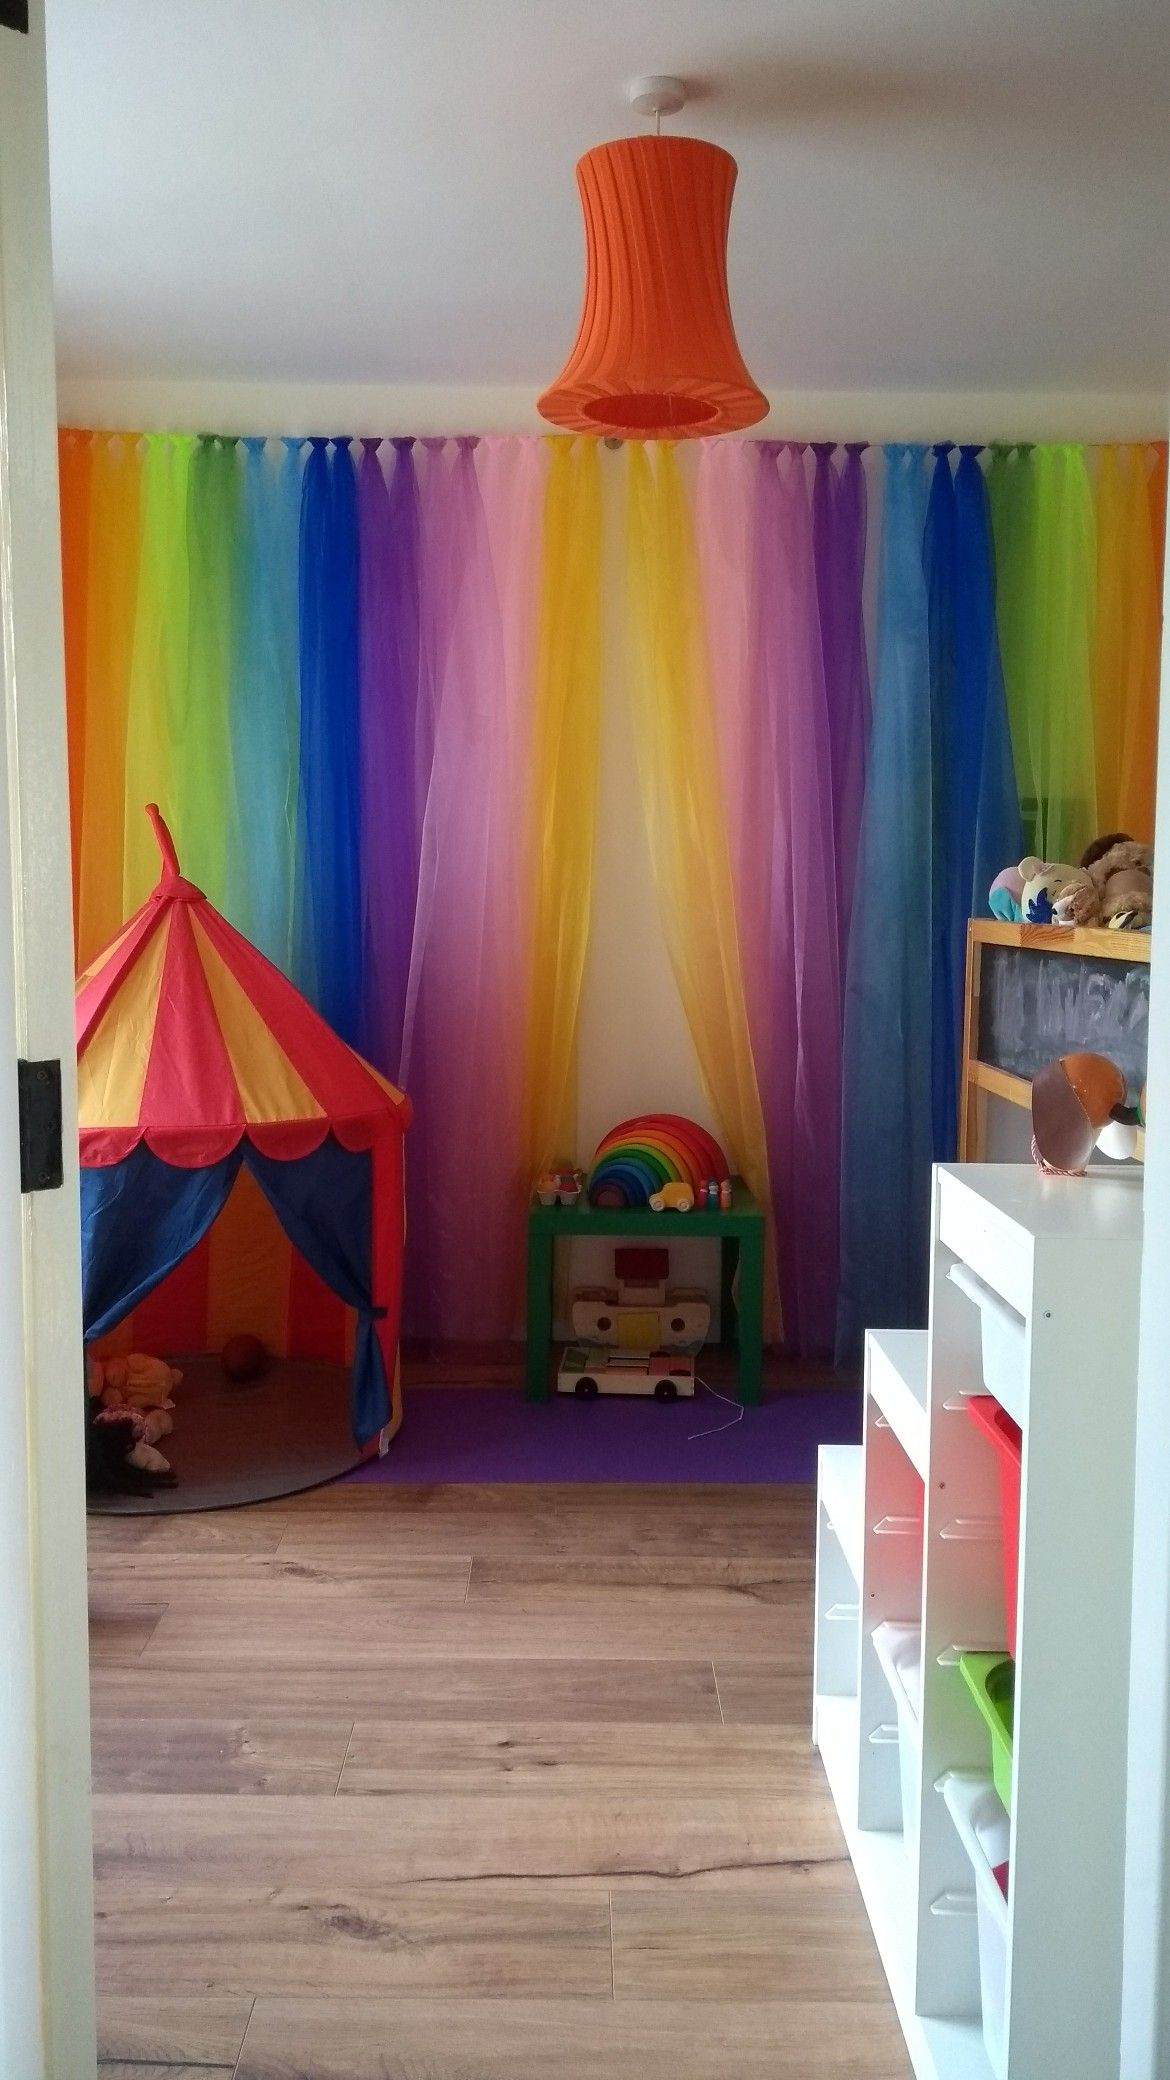 ikea circus tent kallax storage solution mid sleeper bed hideaway grimms wooden toys grimms rainbow cars 12 rainbow people and balls